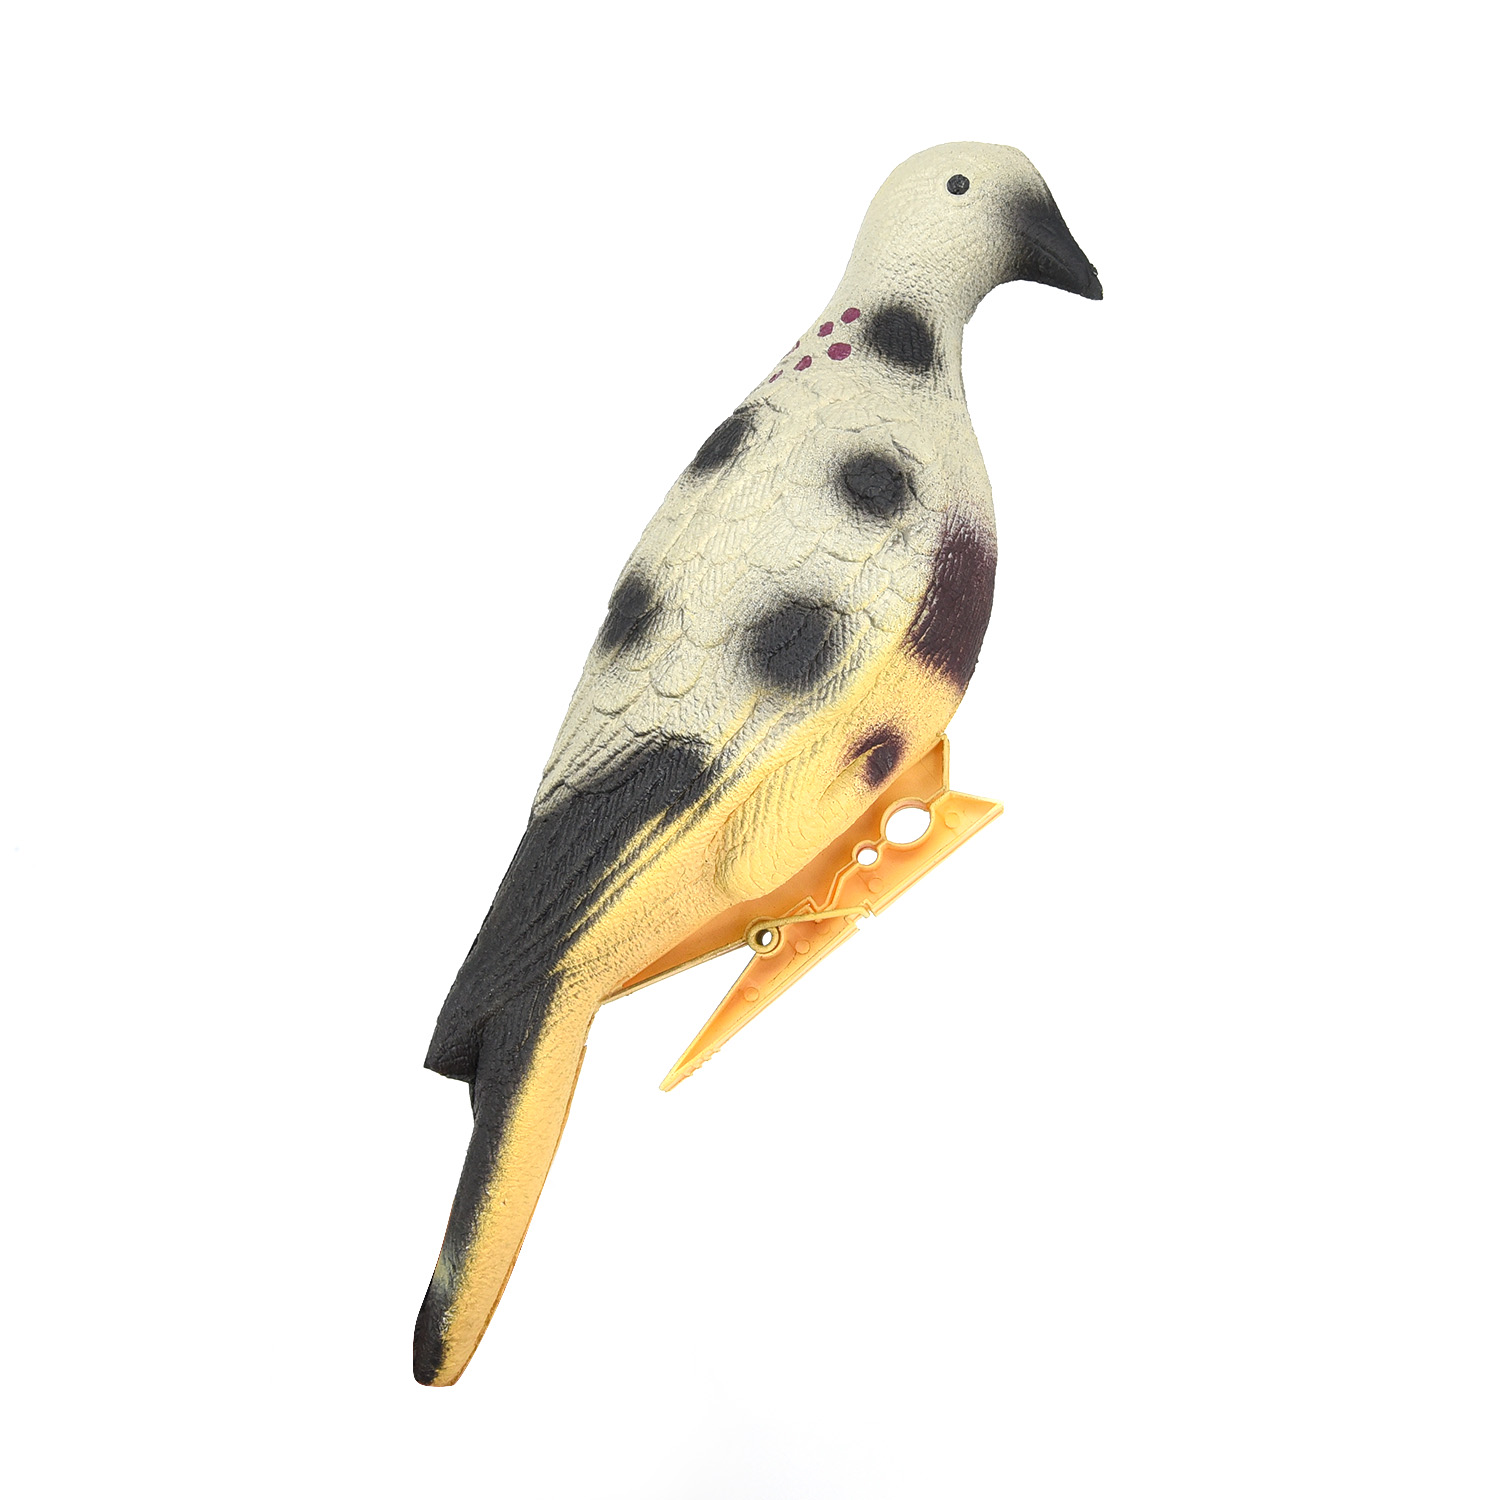 Grey Pigeon Target Funny Recurve Crossbow Game EVA Foam Animal Pigeon Archery Target For Animal Hollow Brand New High Quality